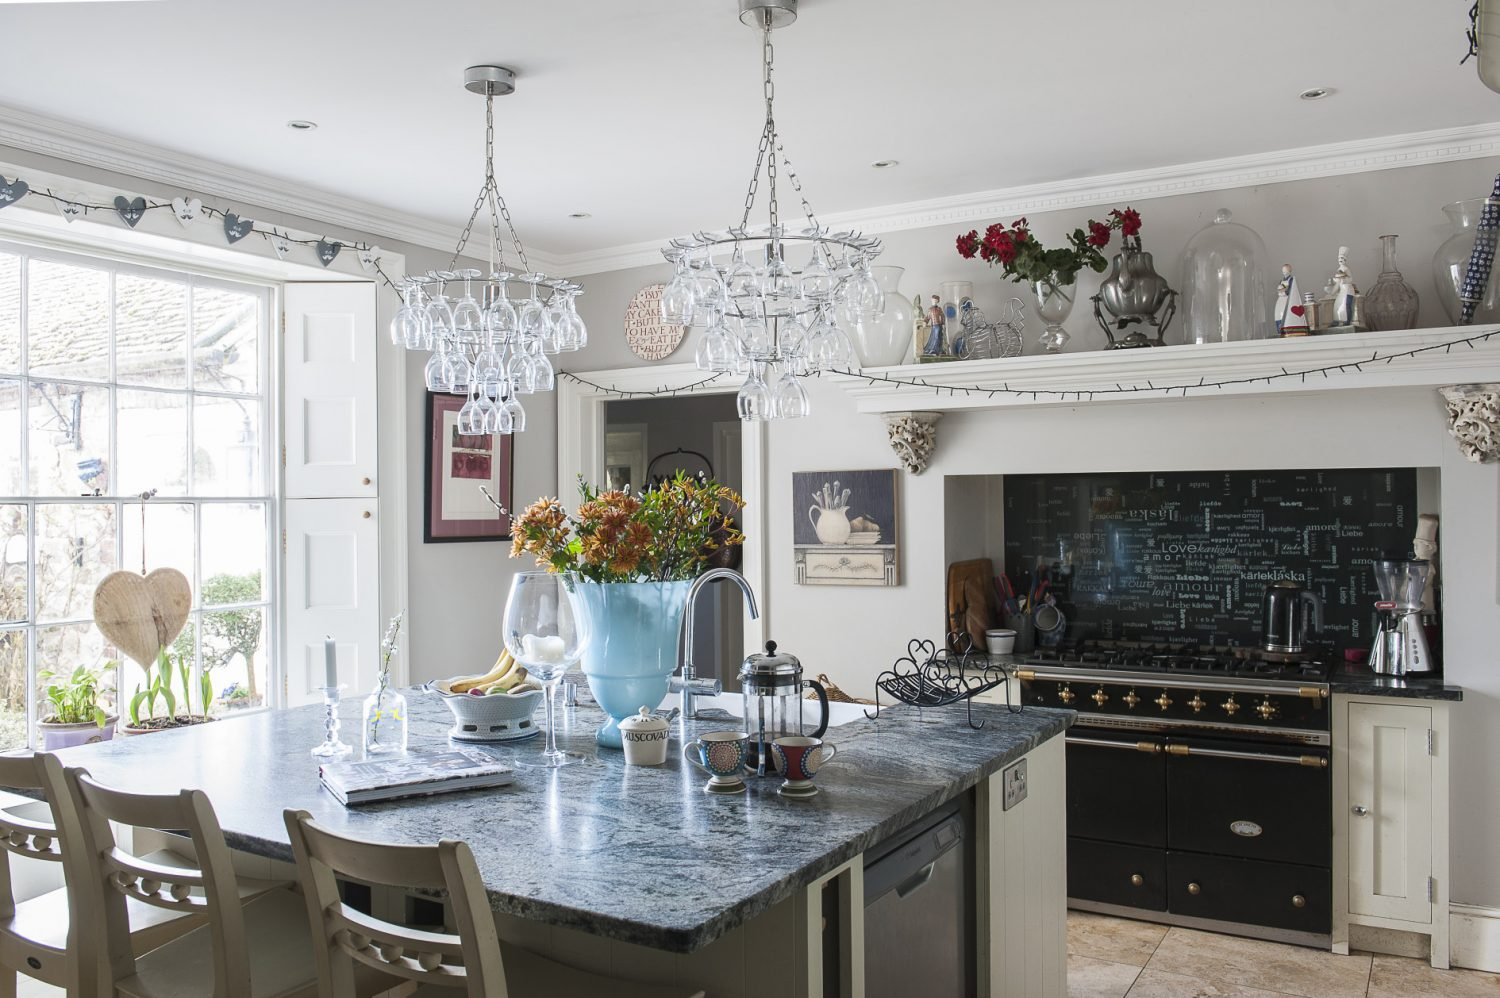 Christel loves to cook, but also lets professional chefs use her kitchen when hosting weddings. The impressive mantelpiece was made especially to sit over the Lacanche range cooker – which came from one of David Beckham's houses – and the stone corbels on which it rests, came from an antiques fair